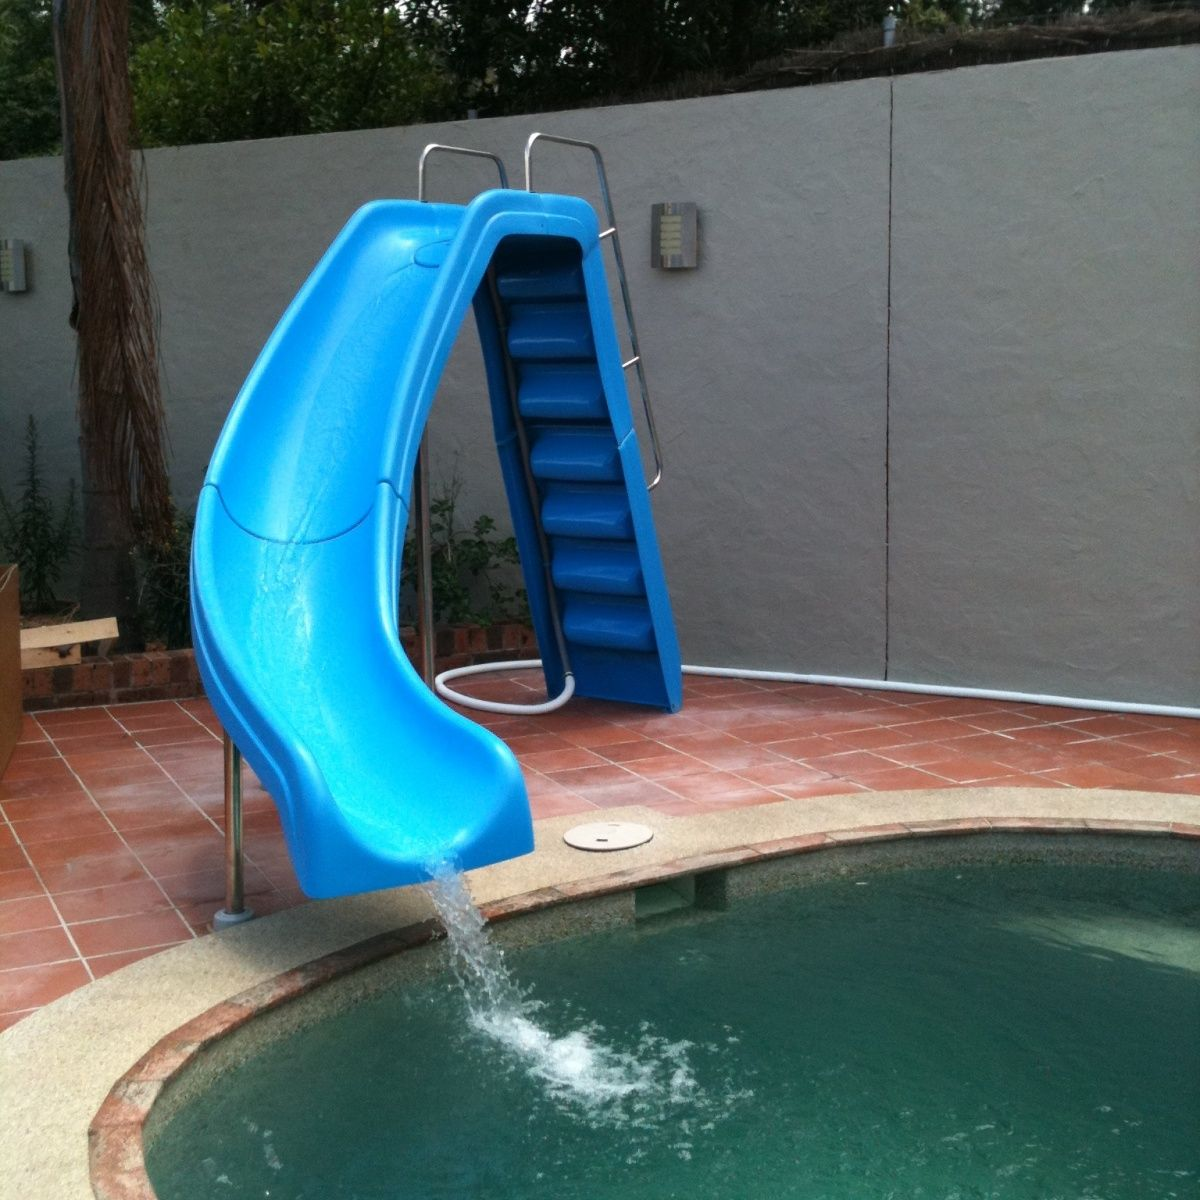 f040ac8bd1cdd8 The Wild Ride The 2 metres high Wild Ride™ slide offers up a fantastic  thrill for big and little sliders. The Zoom Flume™ water delivery system  supplies a ...